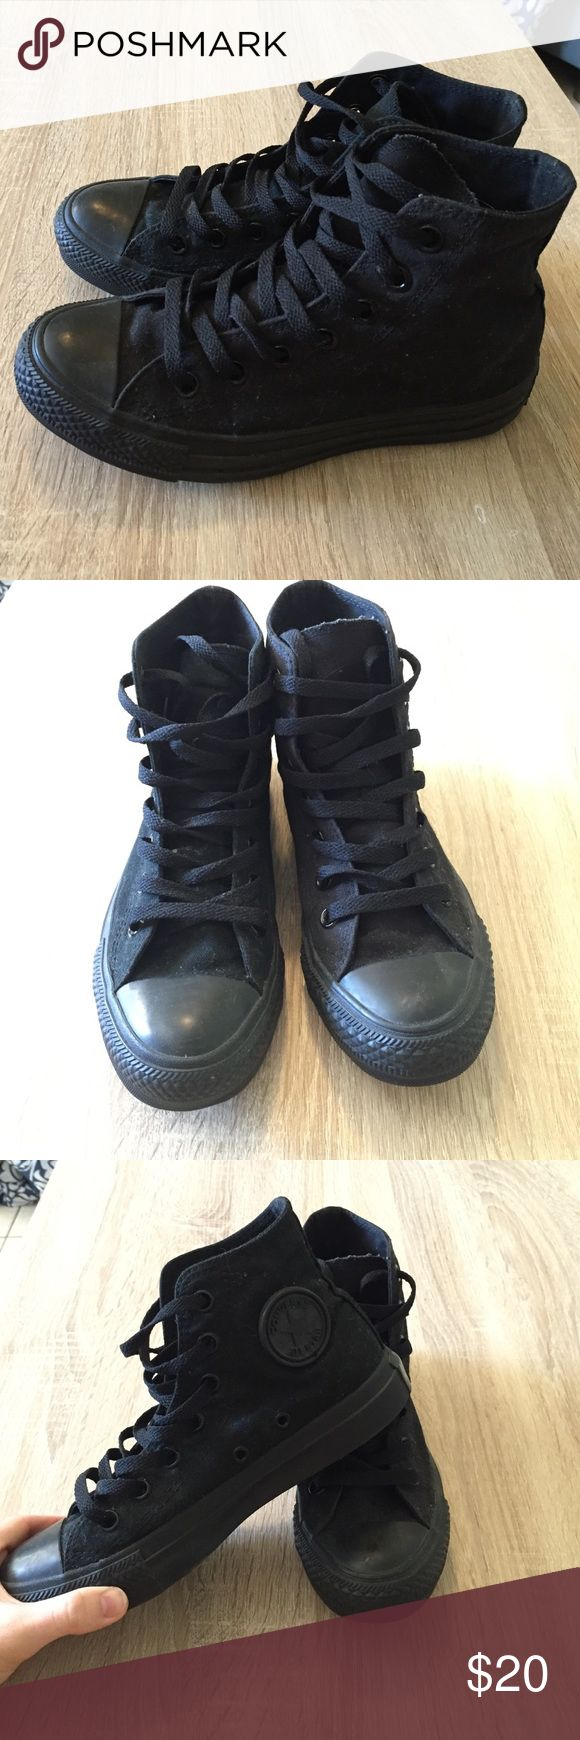 All black hi-top Converse In nearly perfect condition. I love them but I rarely wear them, would prefer the low top version. Make an offer! Converse Shoes Sneakers